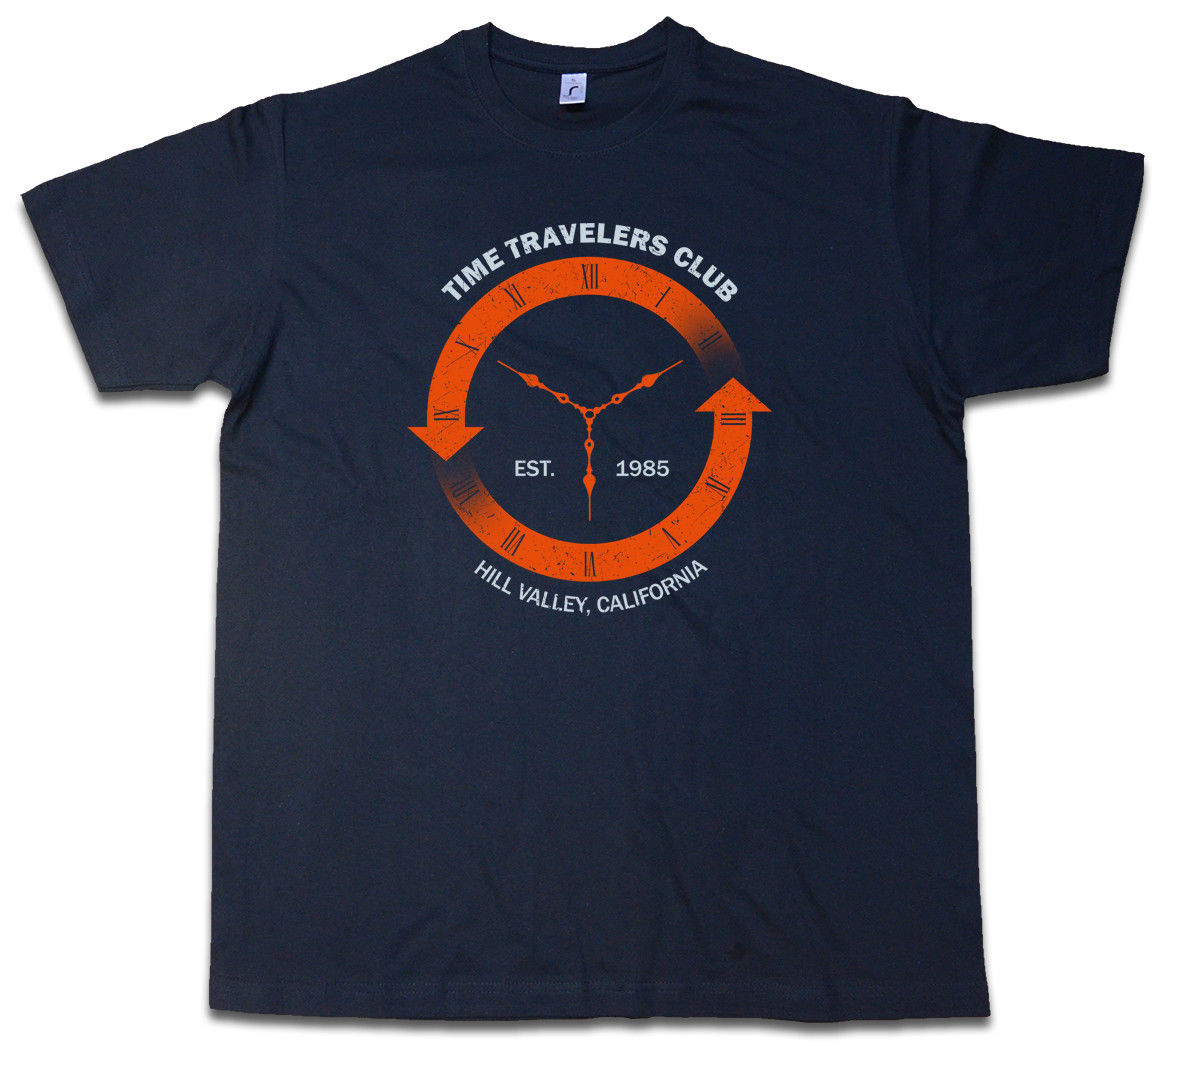 TIME TRAVELERS CLUB T-SHIRT - Back To Shirt The Mc Fly Future Sizes S - 5XL